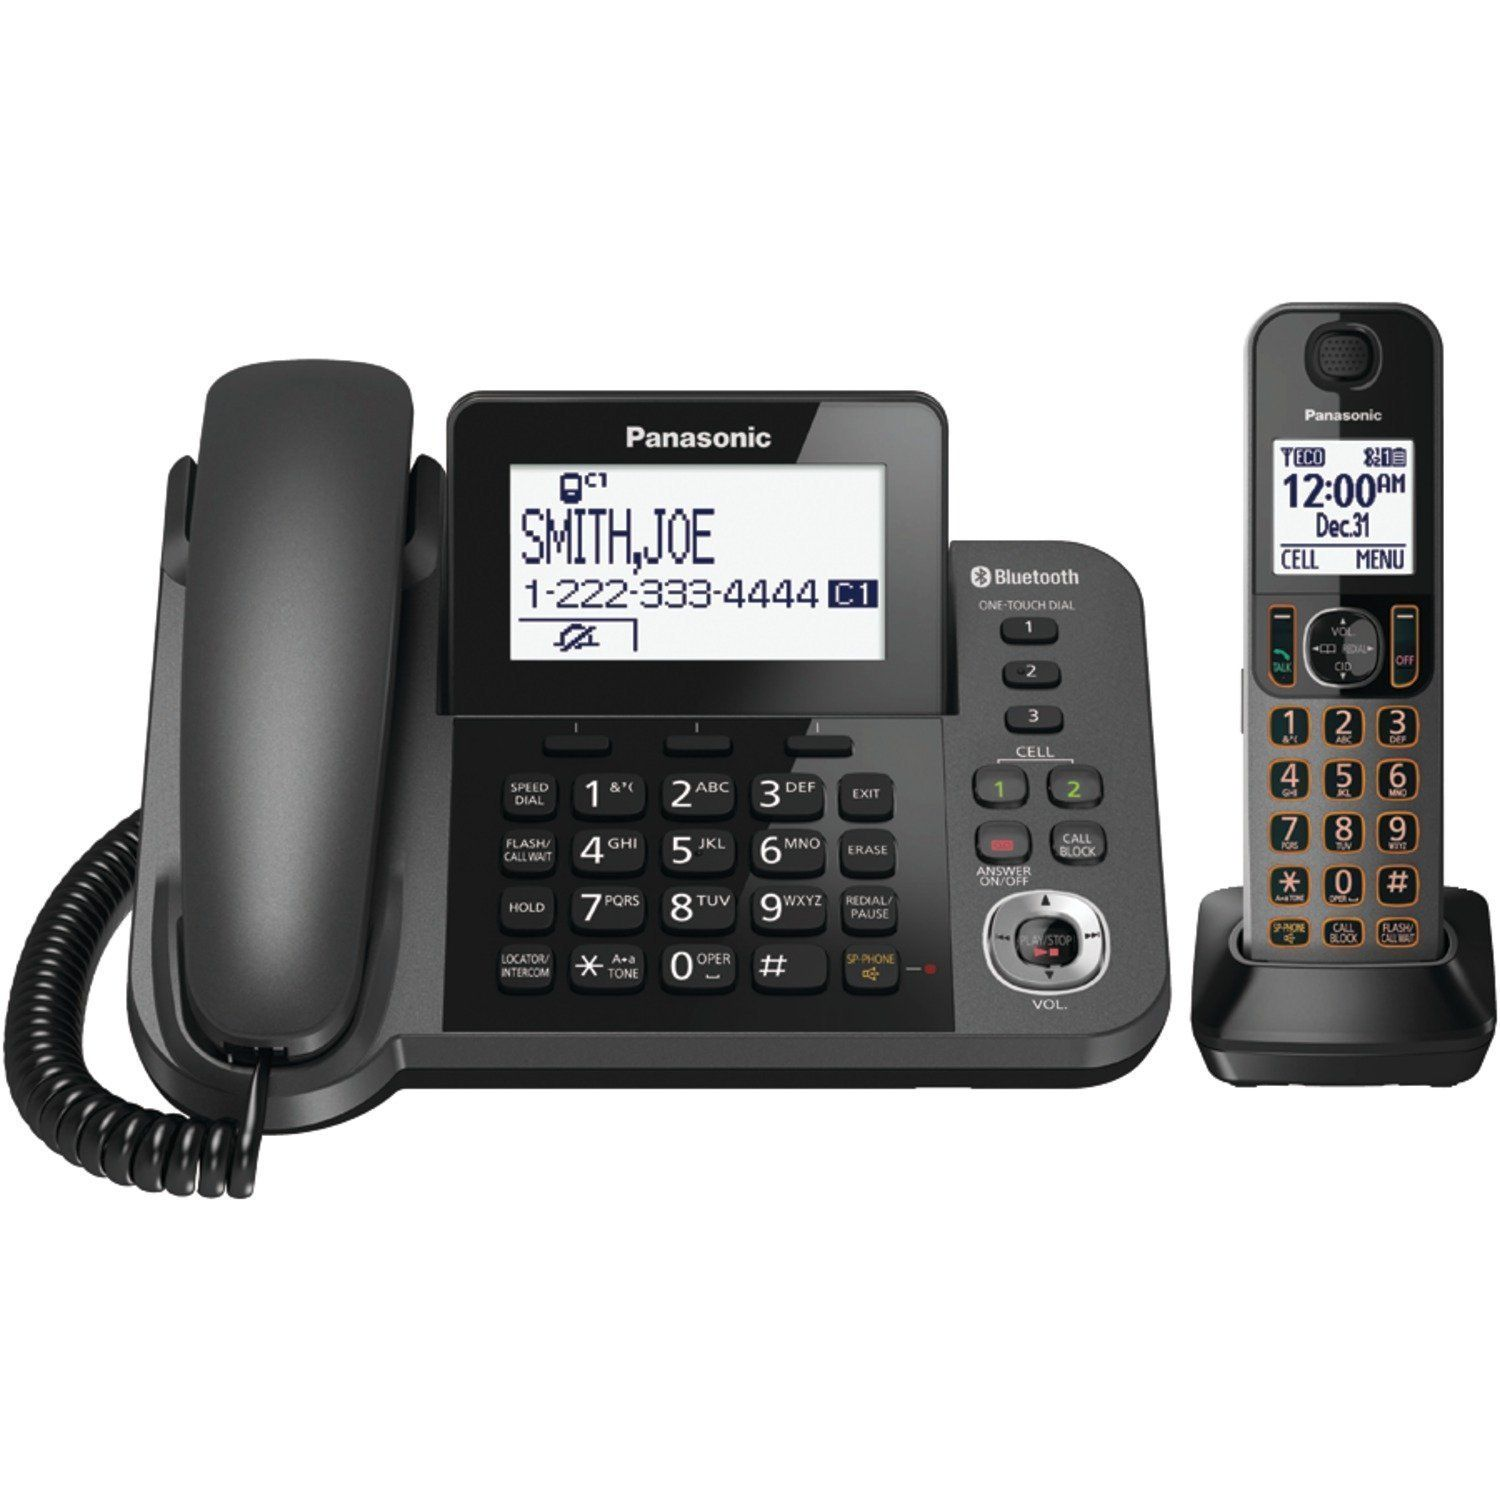 Panasonic kx tgf380m dect 60 1 handset bluetooth landline panasonic kx tgf380m dect 60 1 handset bluetooth landline telephone with corded base unit sciox Images